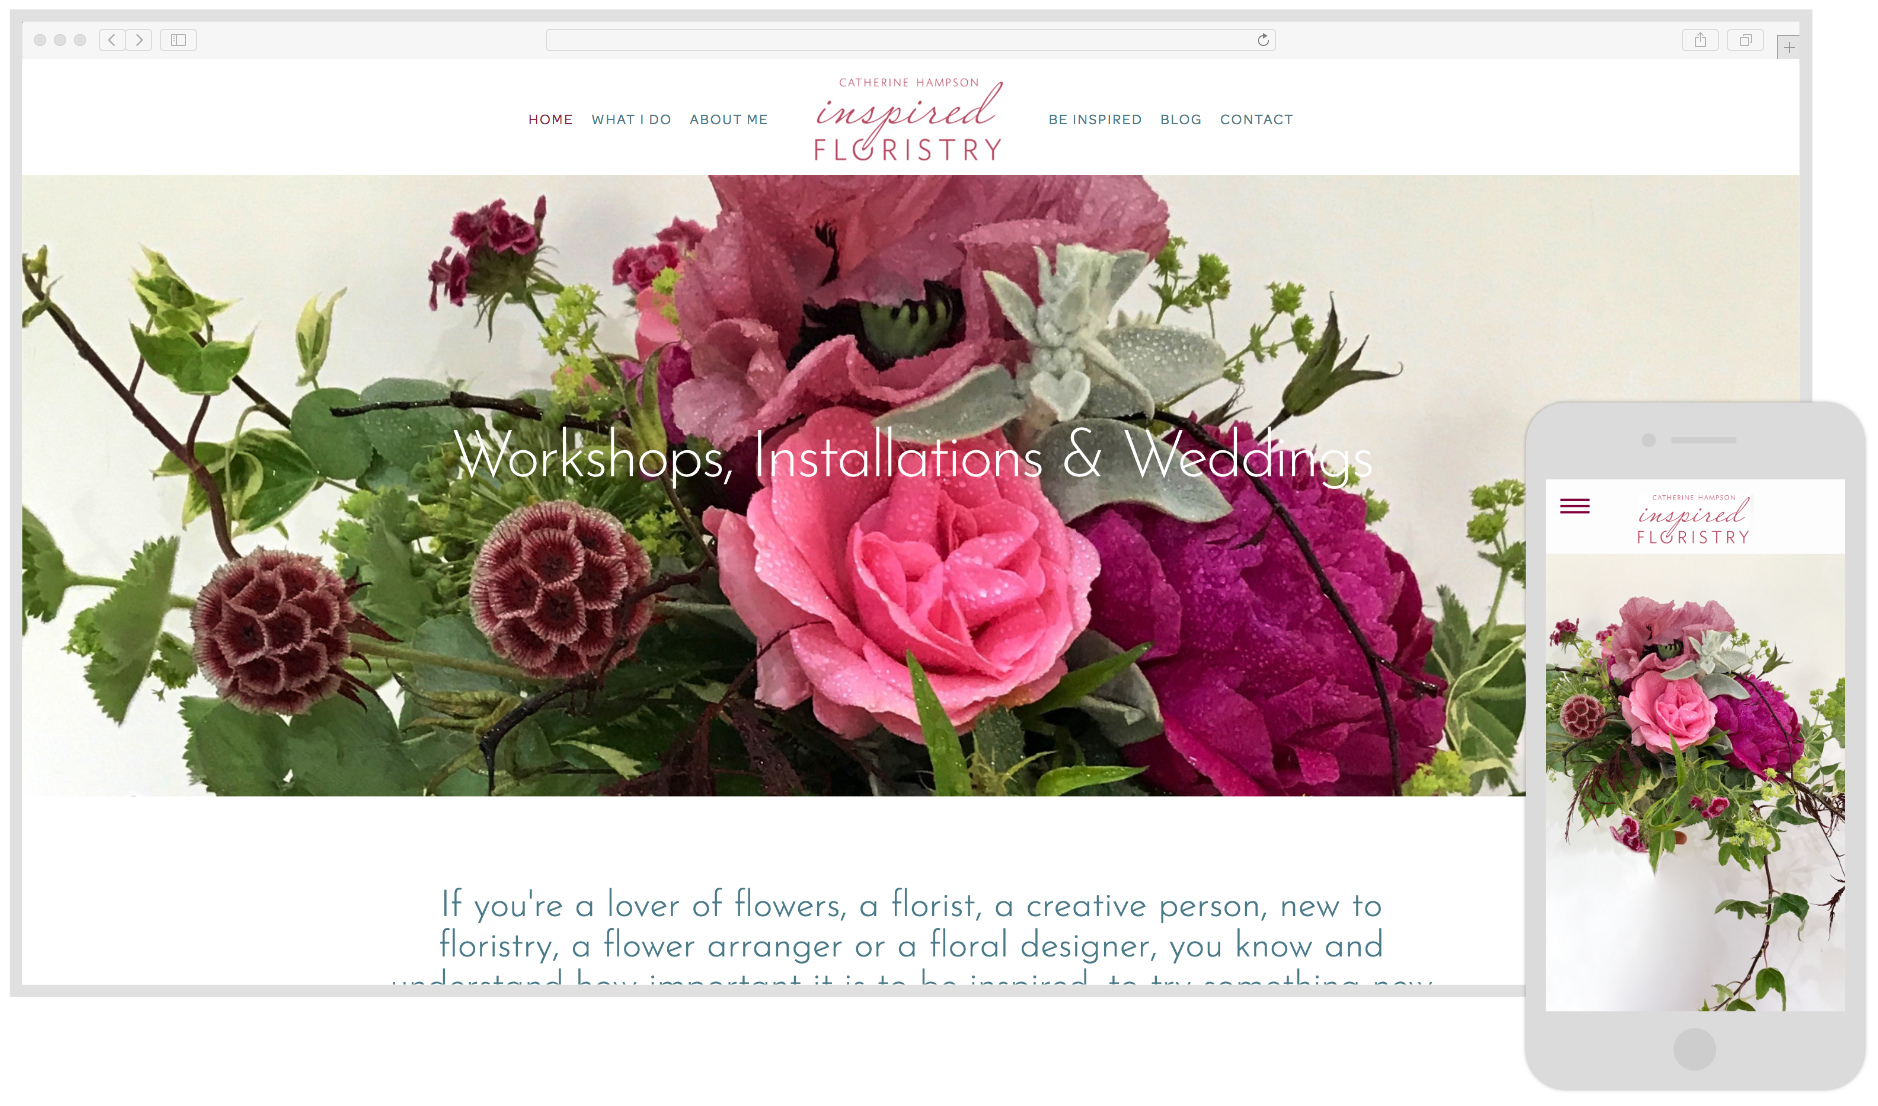 Inspired-floristry-website.jpg